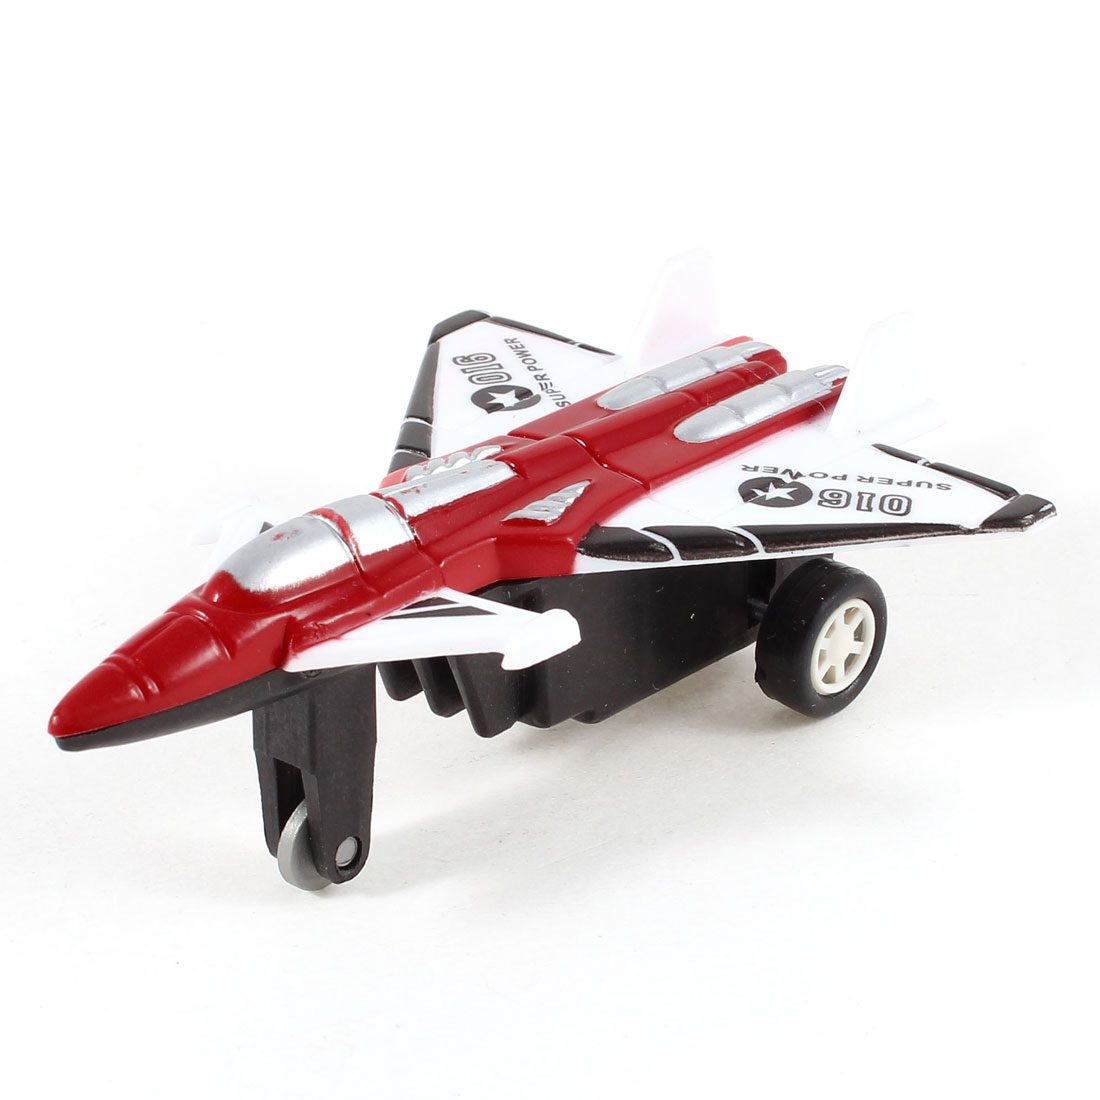 Red White Plastic Pull Back and Go Airplane Pane Model Toy for Children